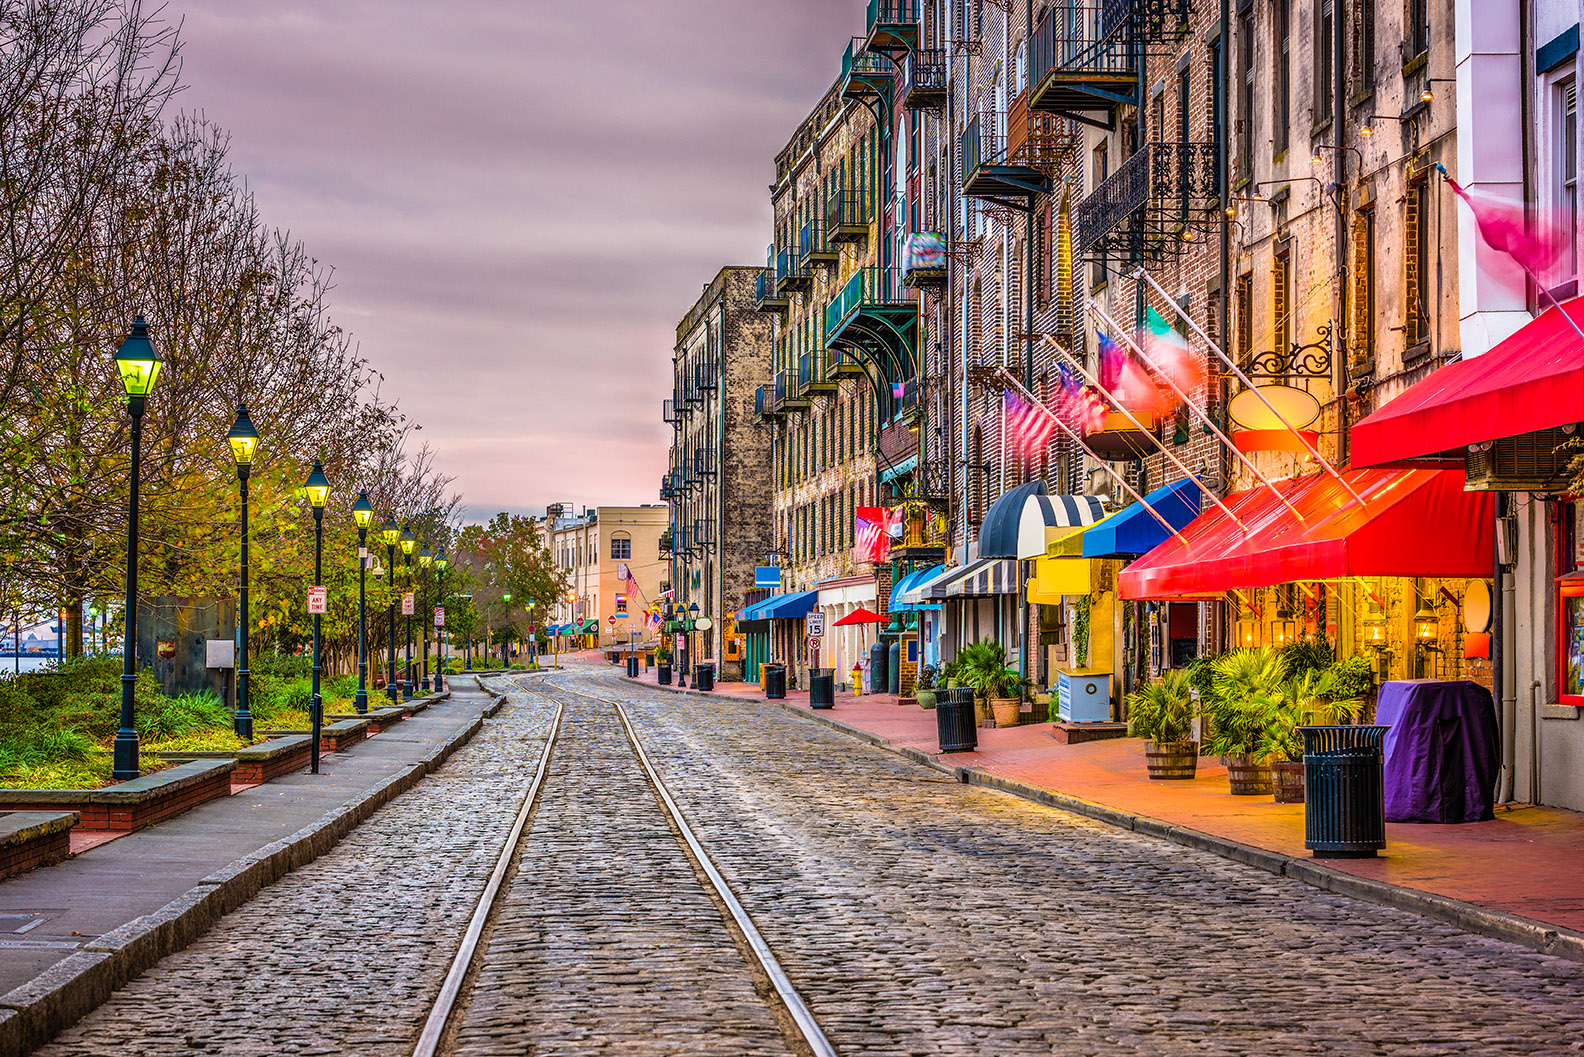 Trolly track - things to do in Savannah